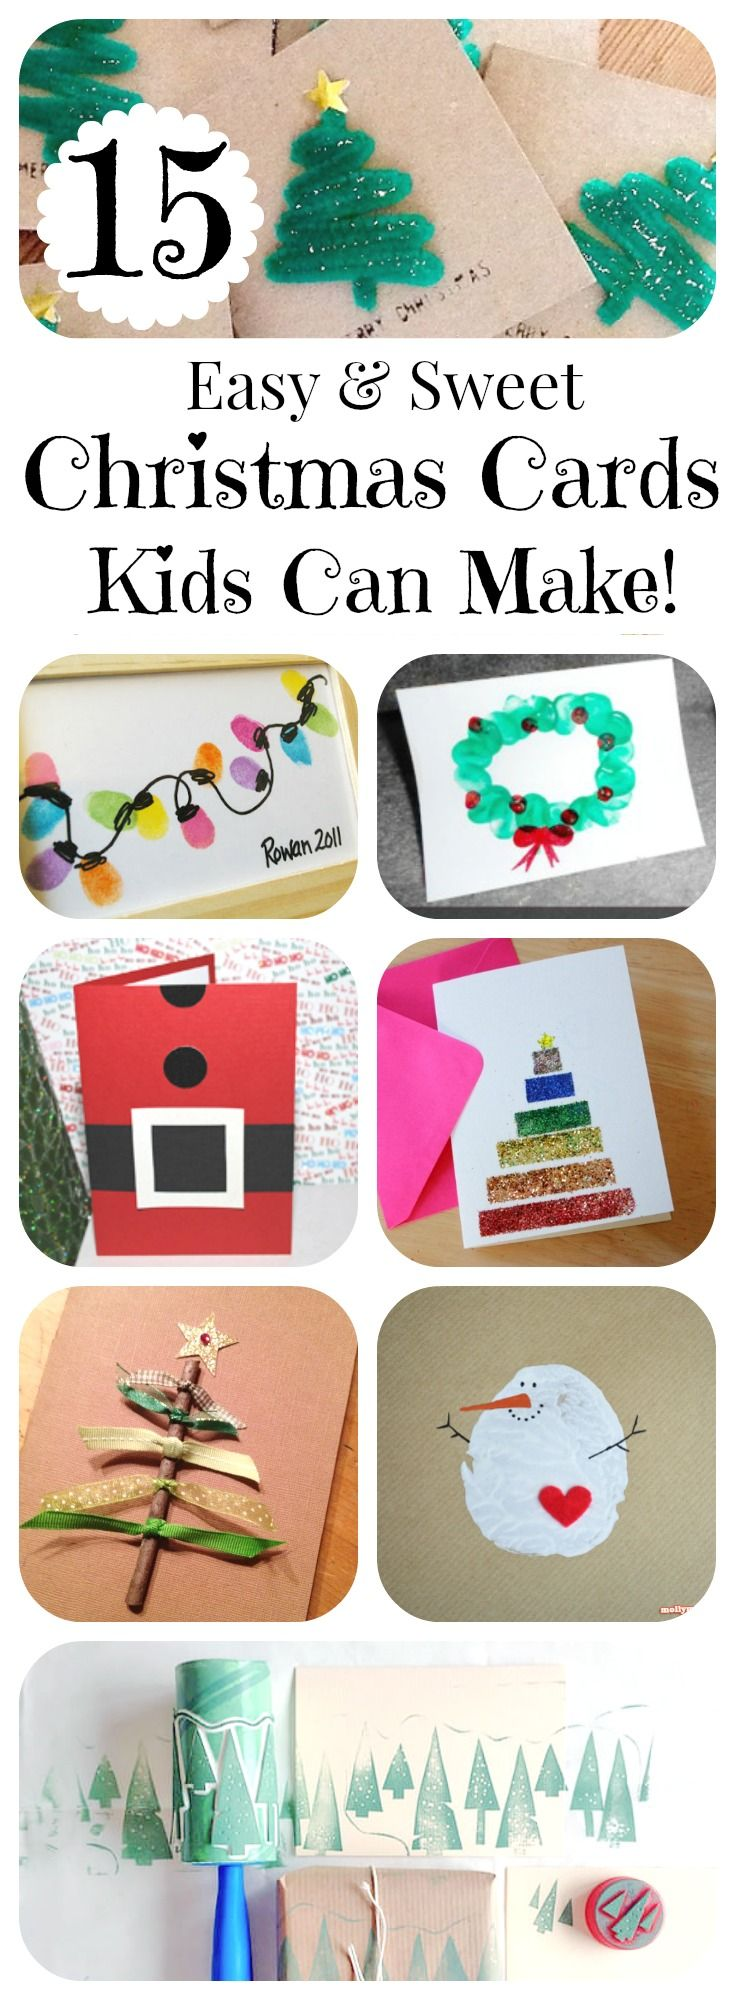 15 Christmas Cards Kids Can Make! || Letters from Santa Holiday Blog! Ideas sencillas y originales que ayudarán a los niños a desarrollar su propia creatividad #PostalesNavidad #ChristmasCard